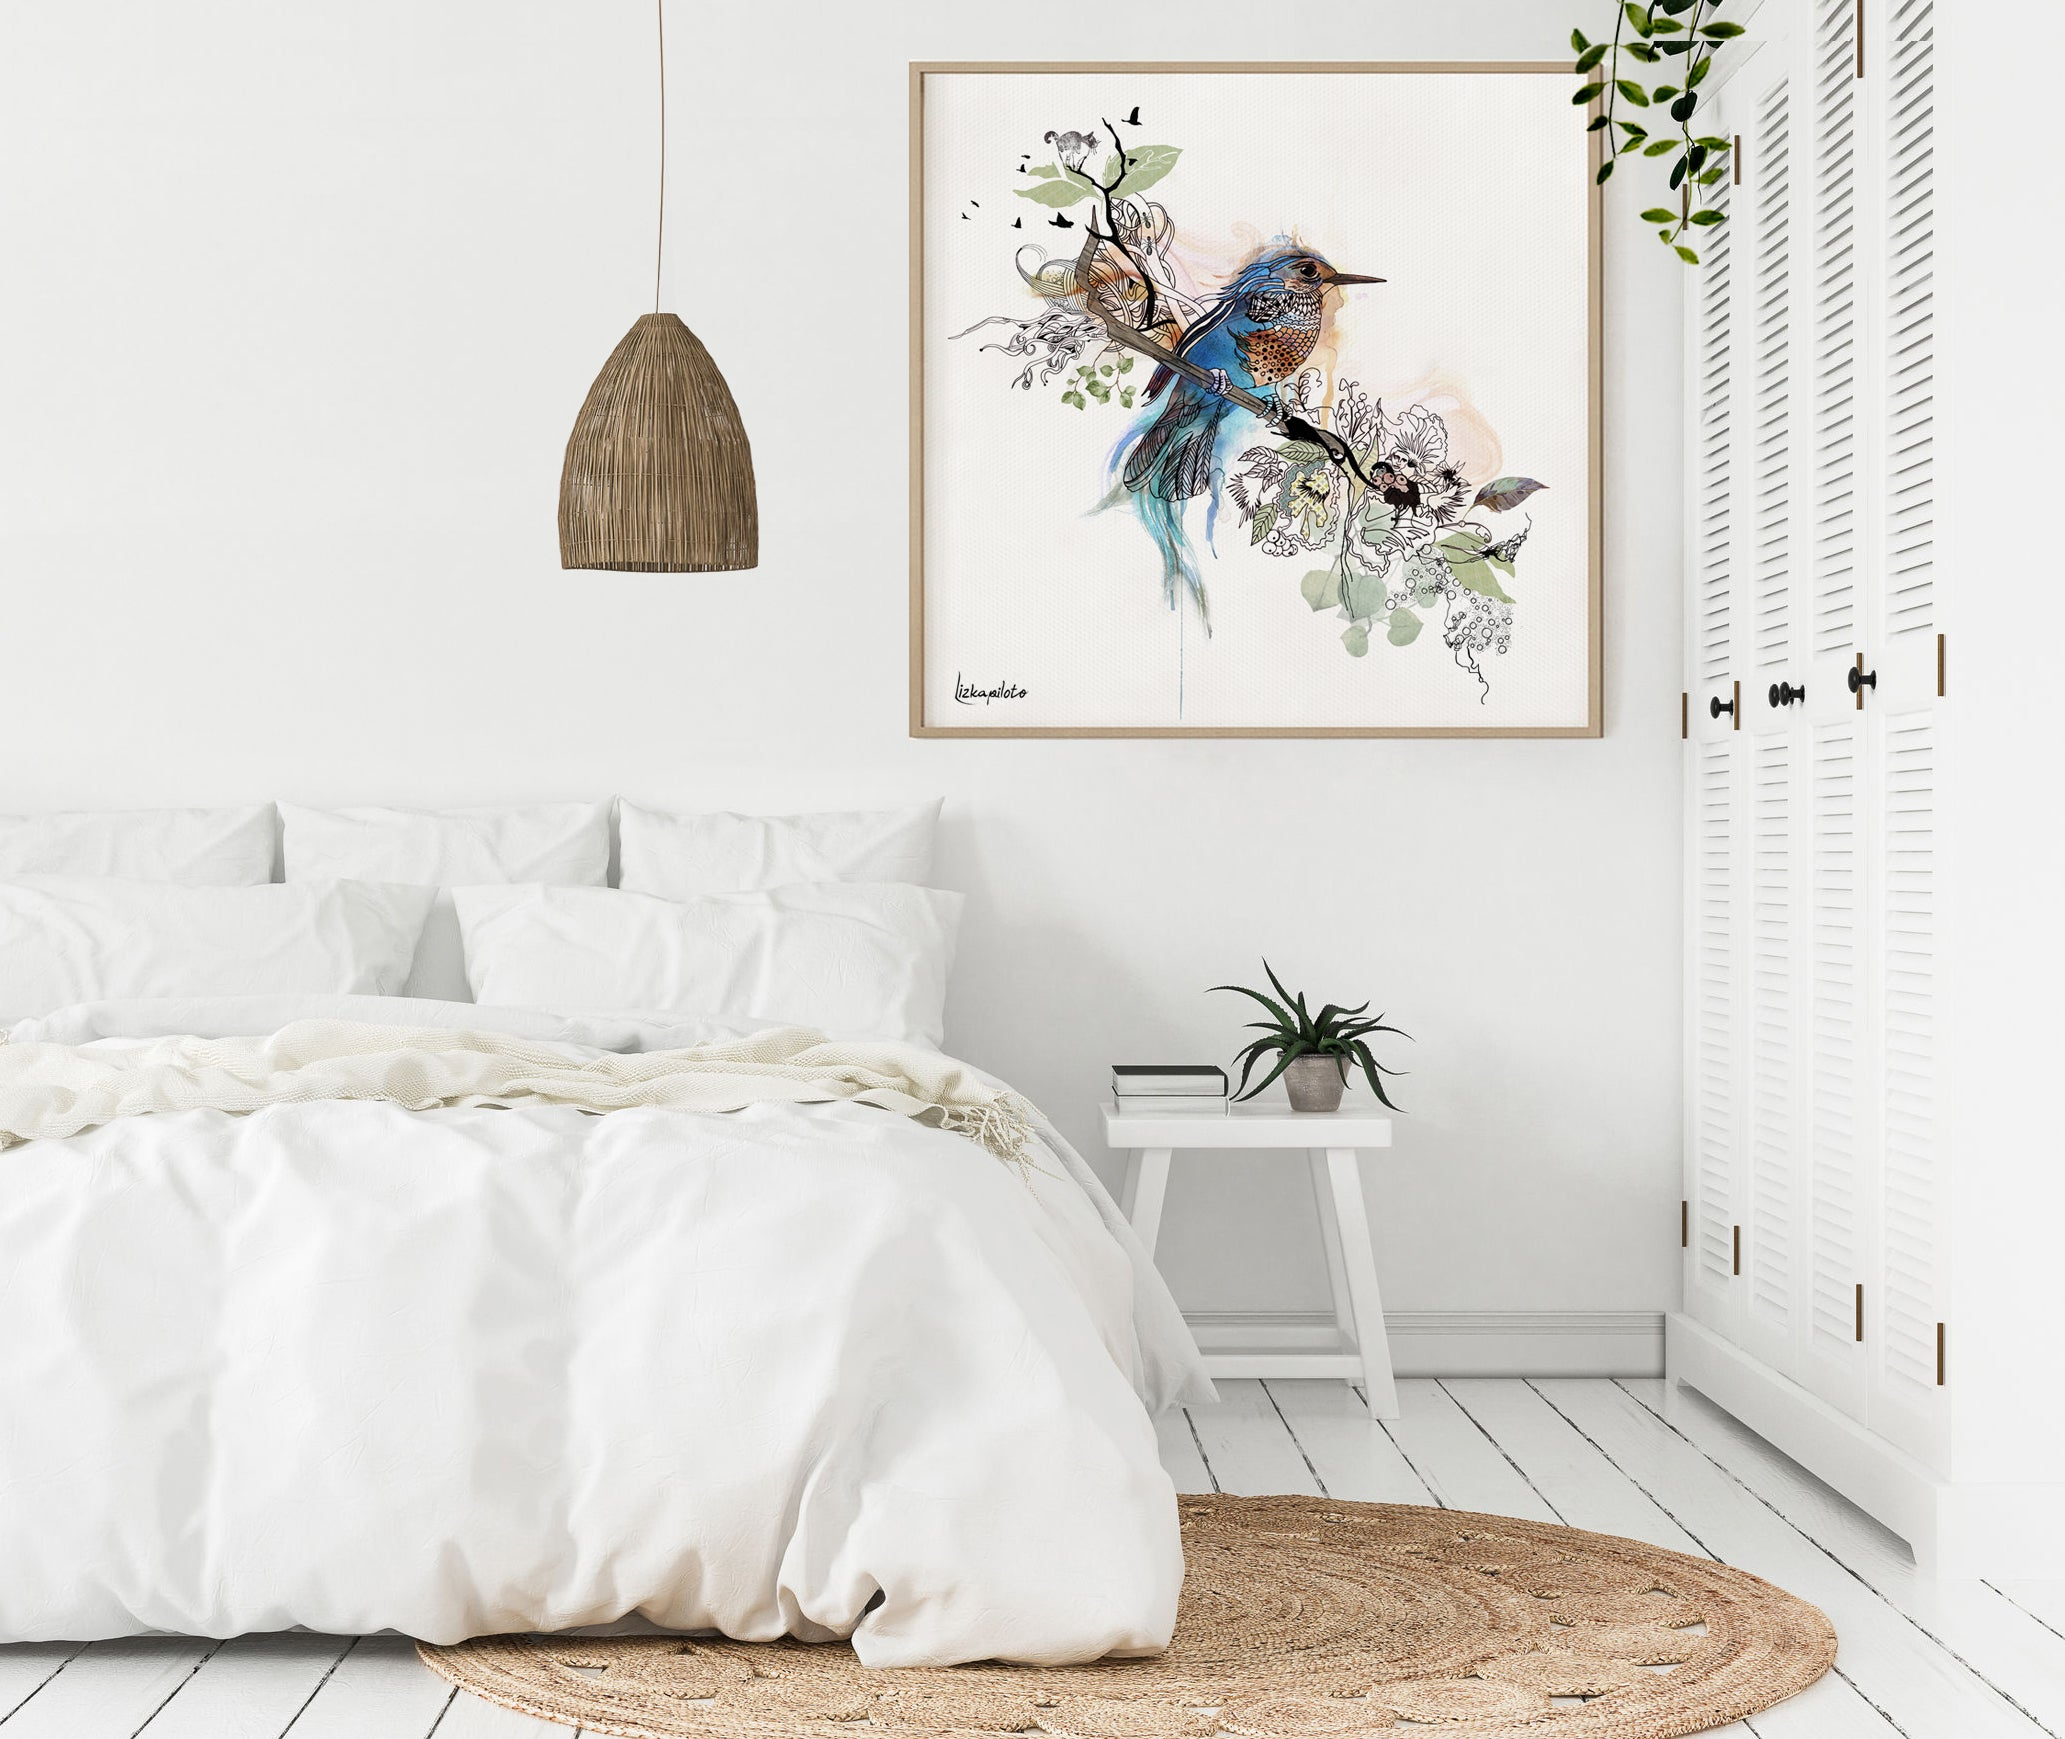 A bluebird framed painting, hanged on a bedroom wall